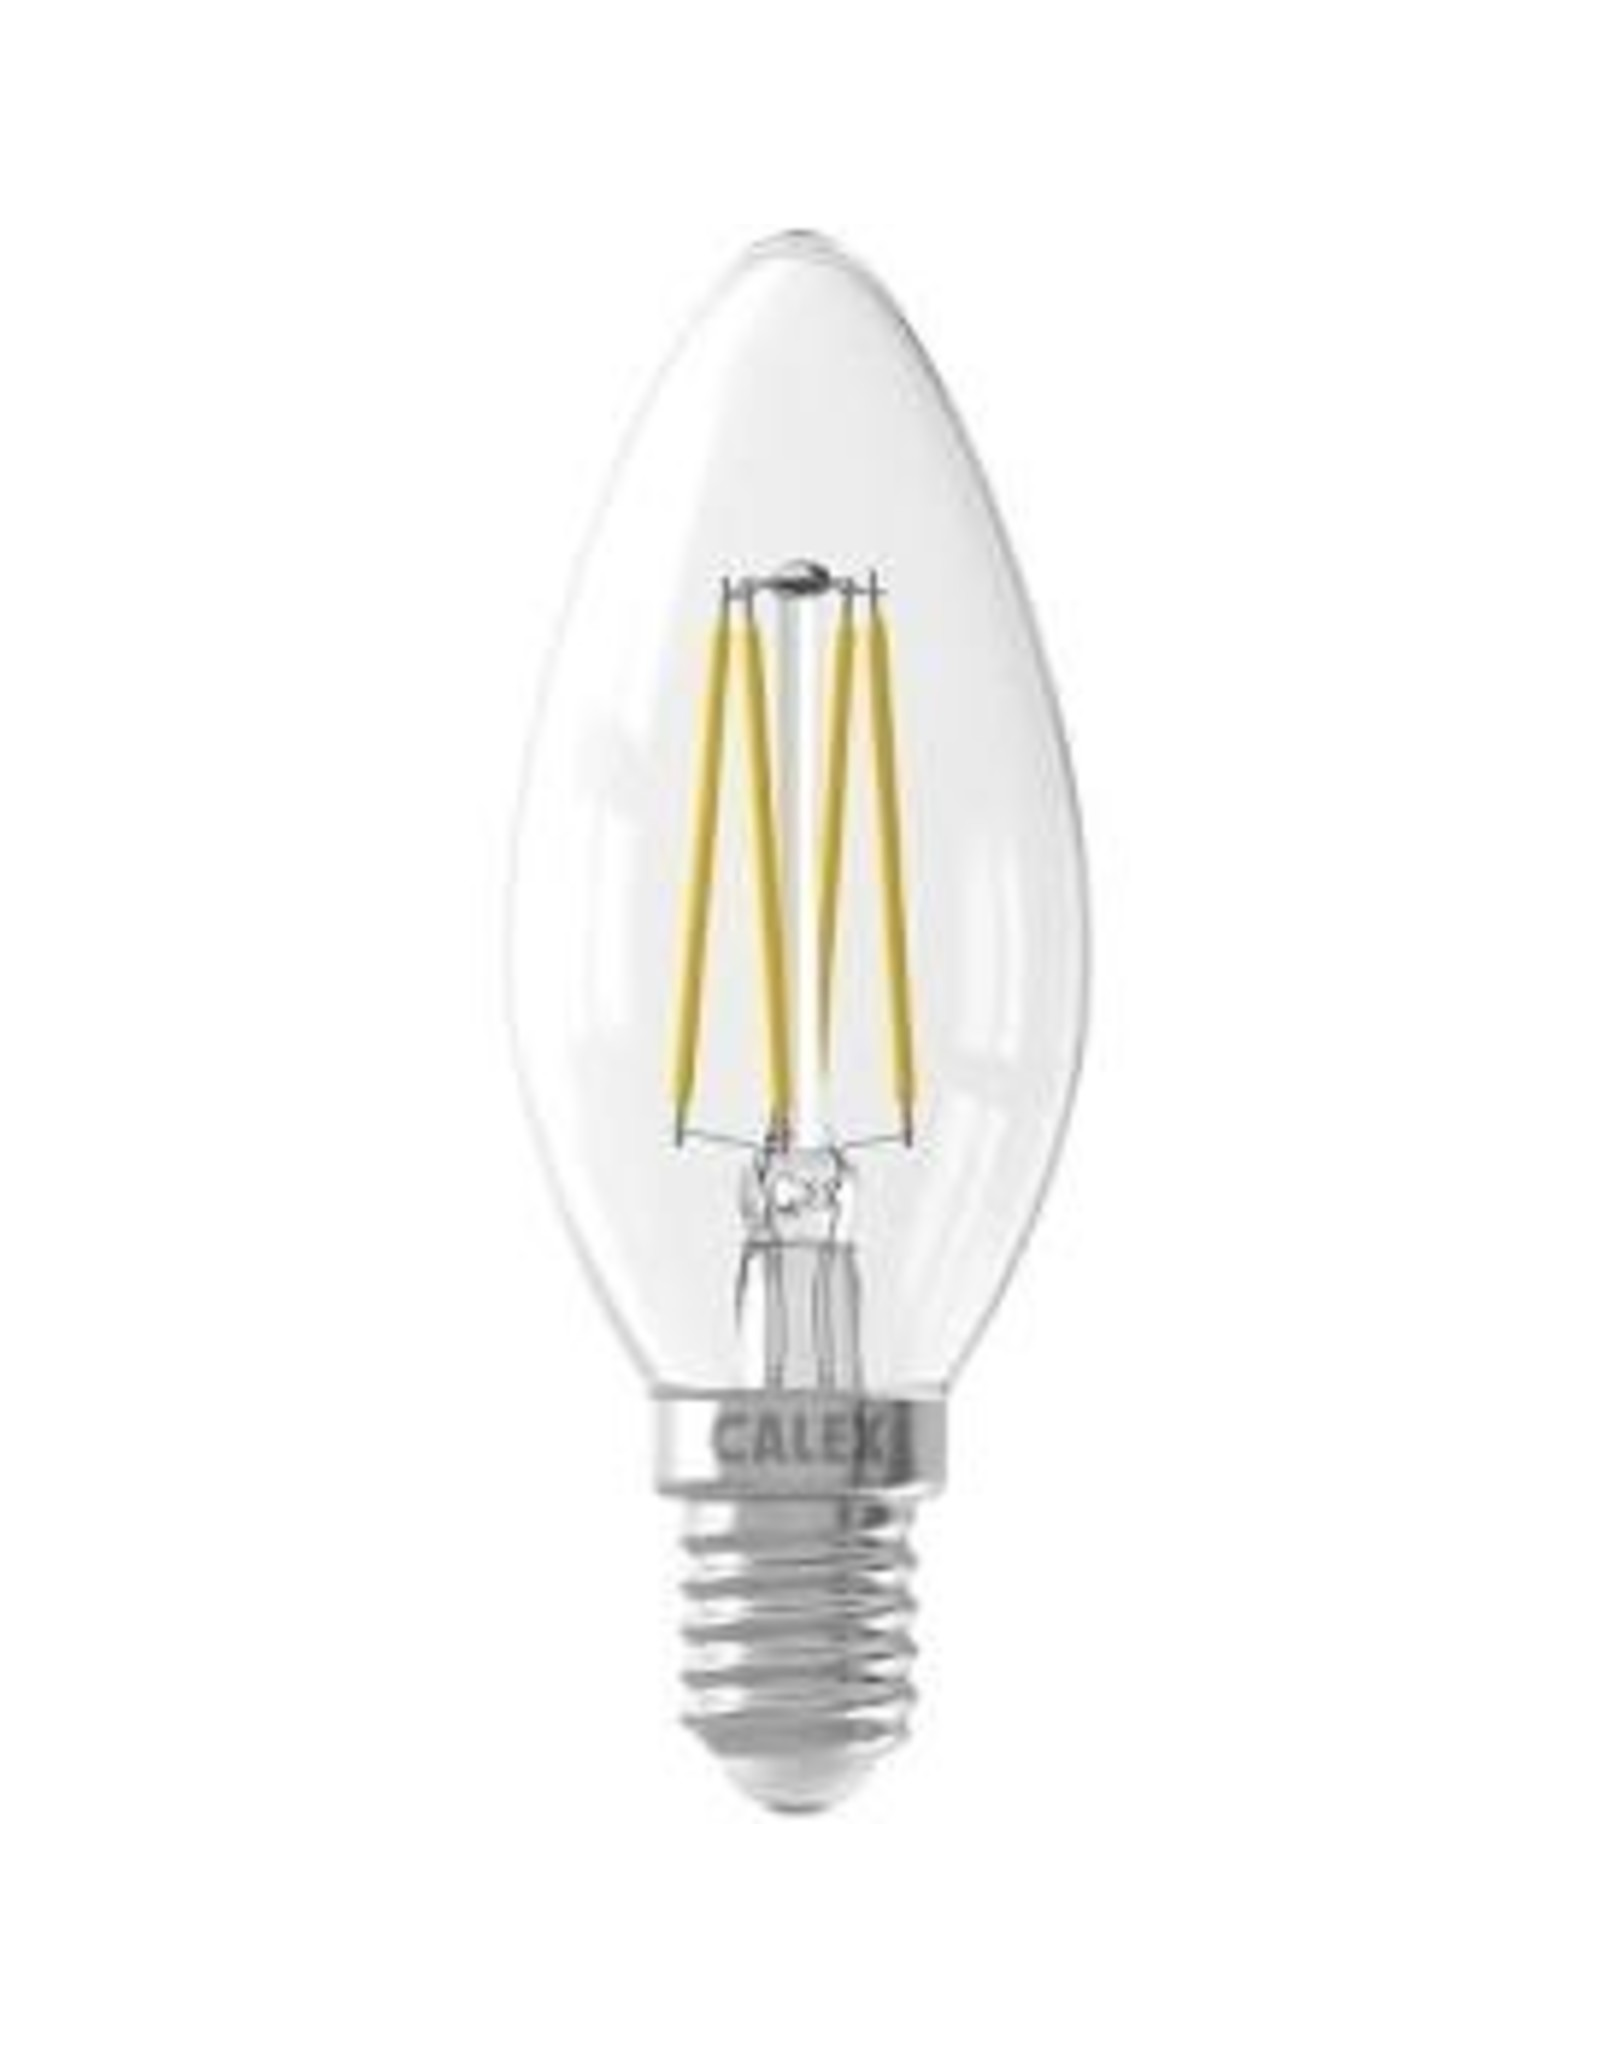 Calex LED Full Glass Filament Candle-lamp 220-240V 3,5W 350lm E14 B35, Clear 2700K CRI80 Dimmable, energy label A++